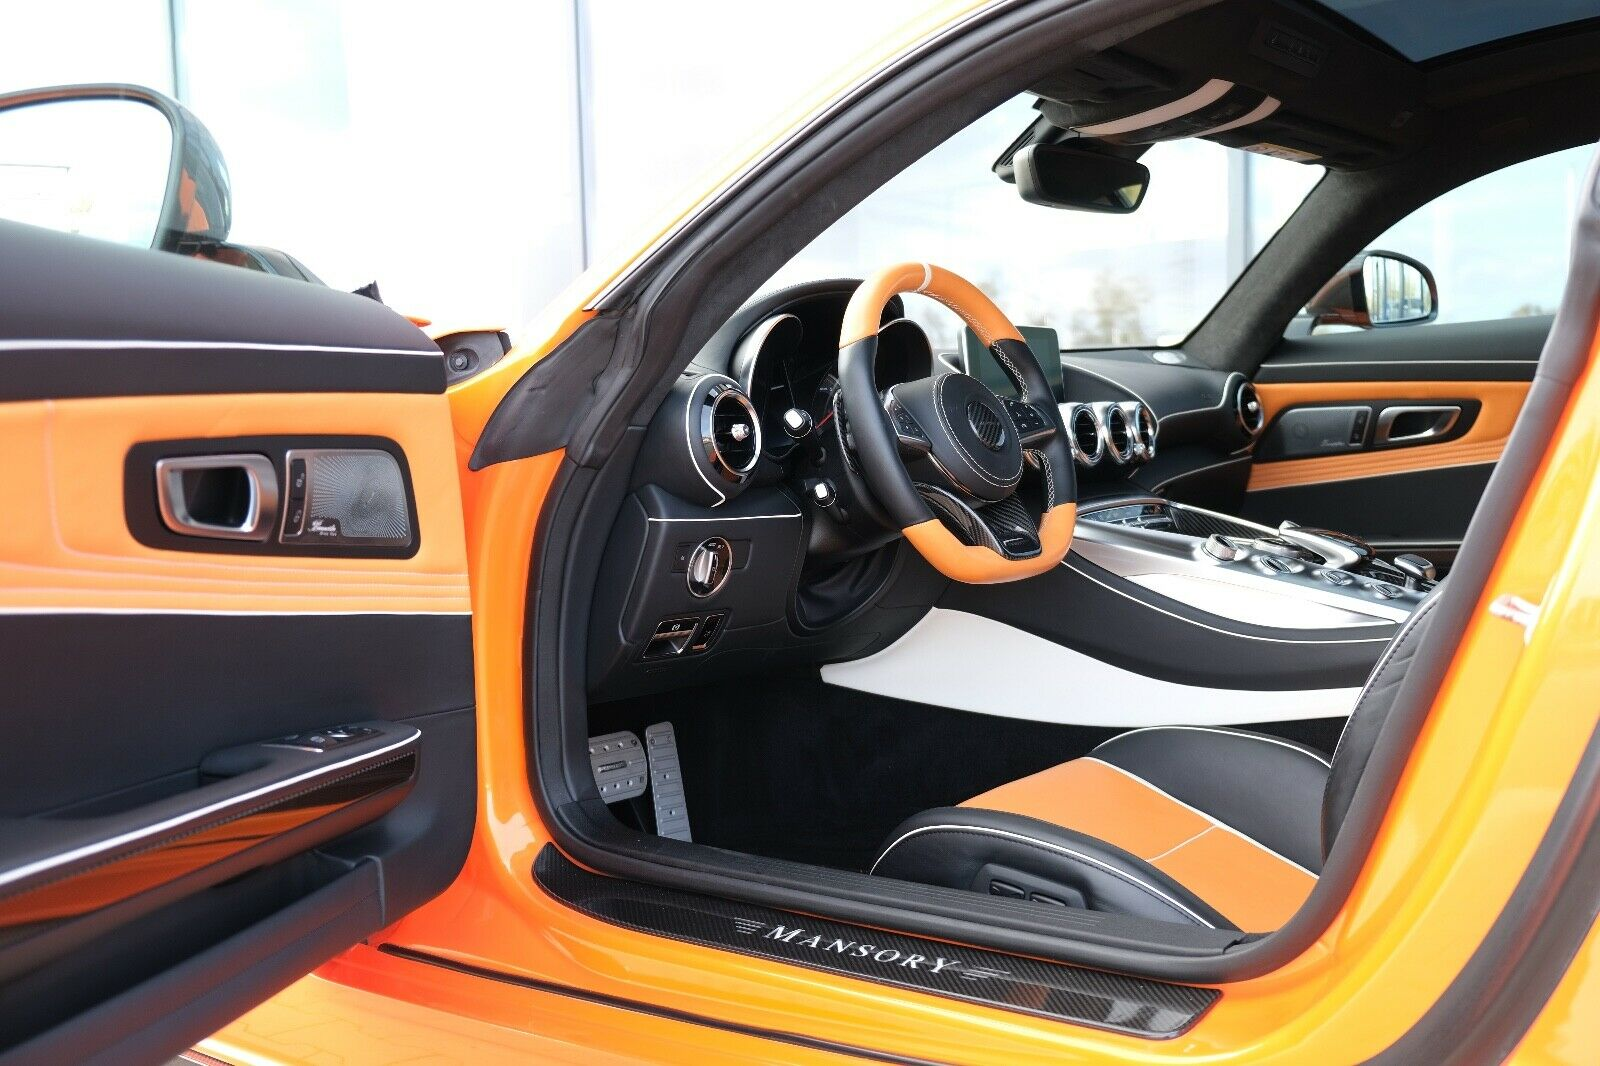 R.W. Exclusive Cars